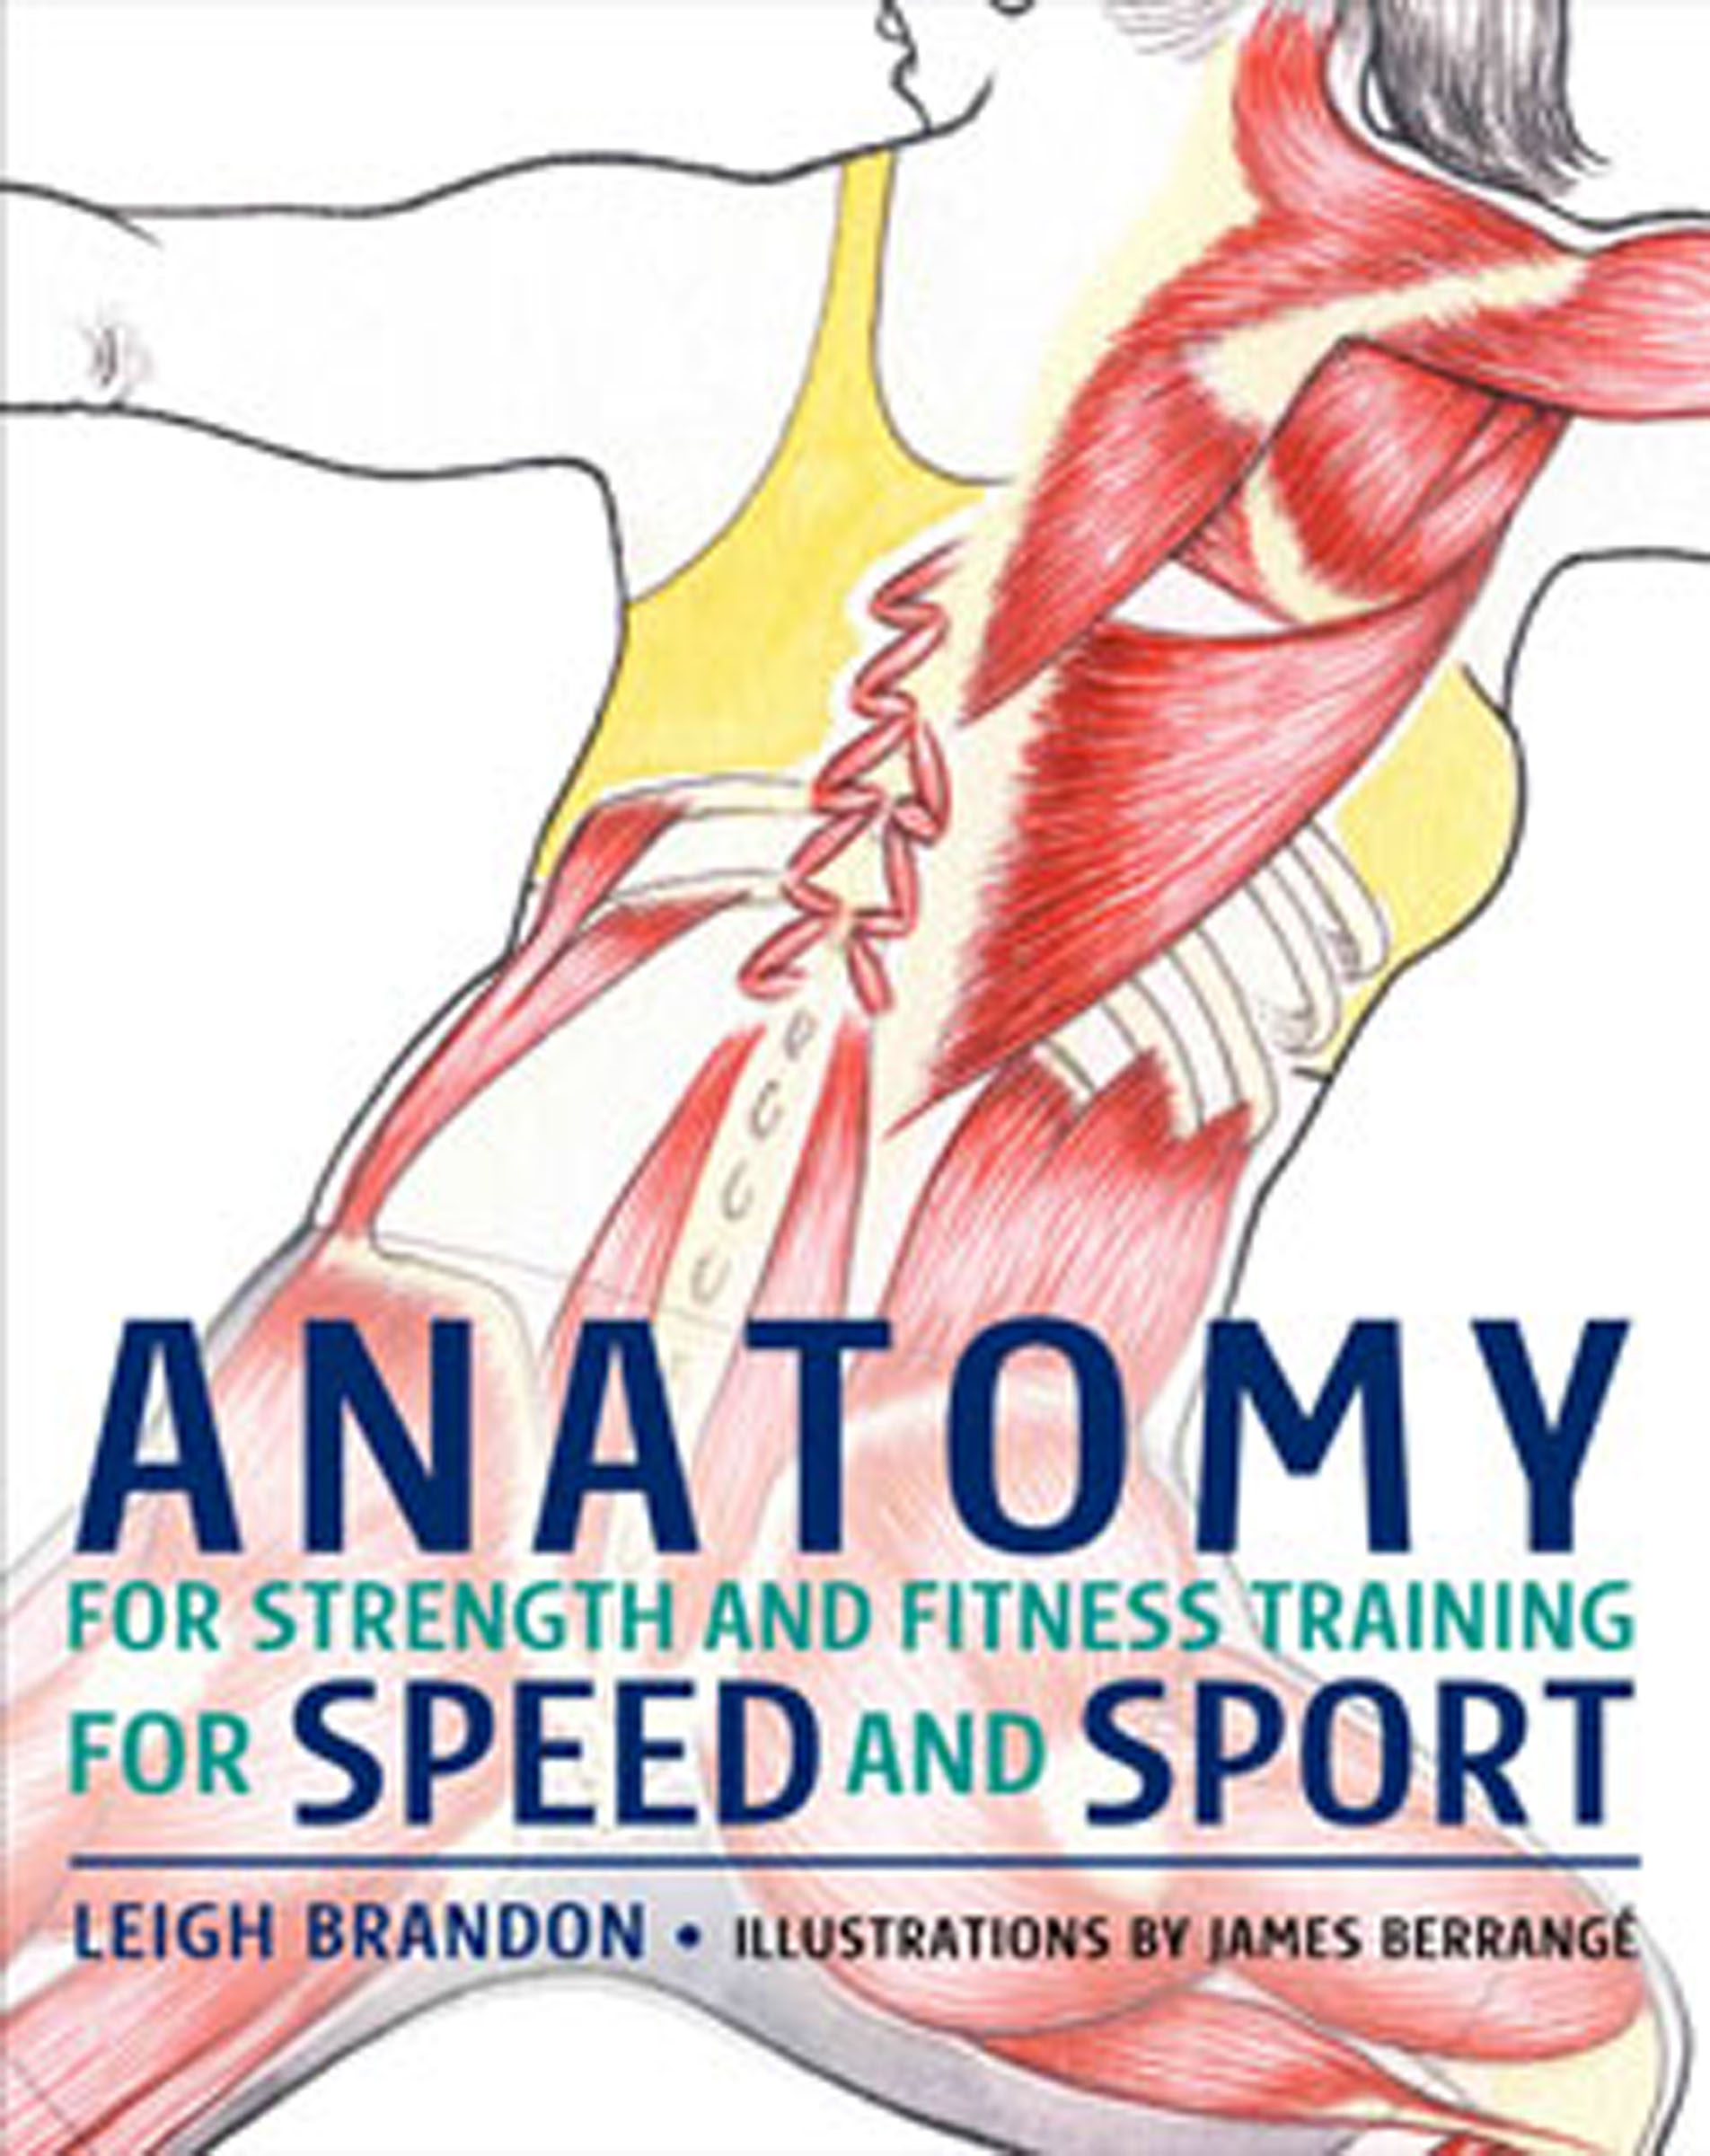 ANATOMY FOR STRENGTH AND FITNESS TRAINING FOR SPEED AND SPORT EBOOK ...